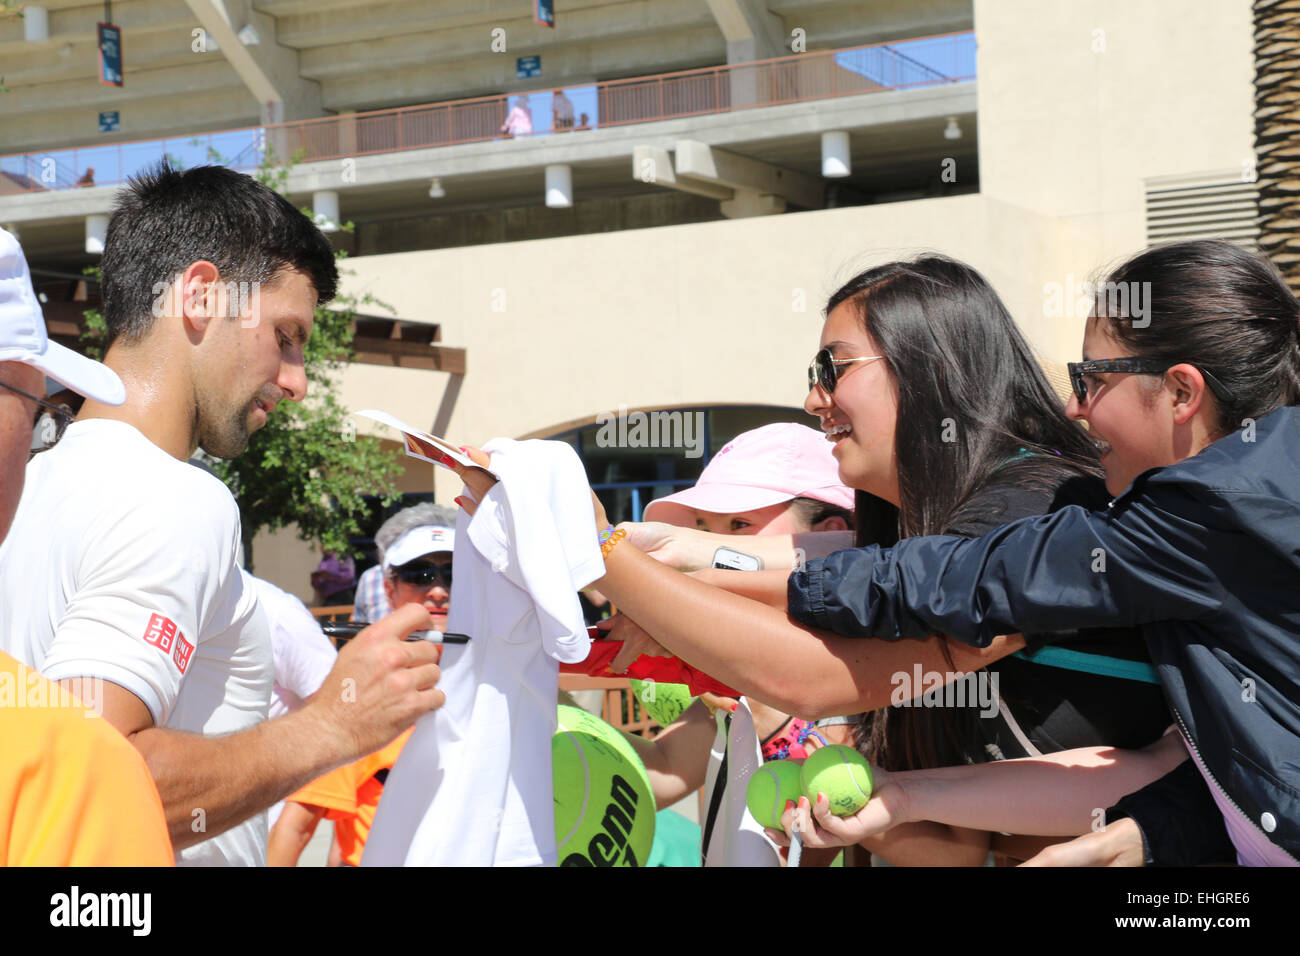 Indian Wells, California 13th March, 2015 Number one ranked Serbian tennis player Novak Djokovic signs autographs - Stock Image